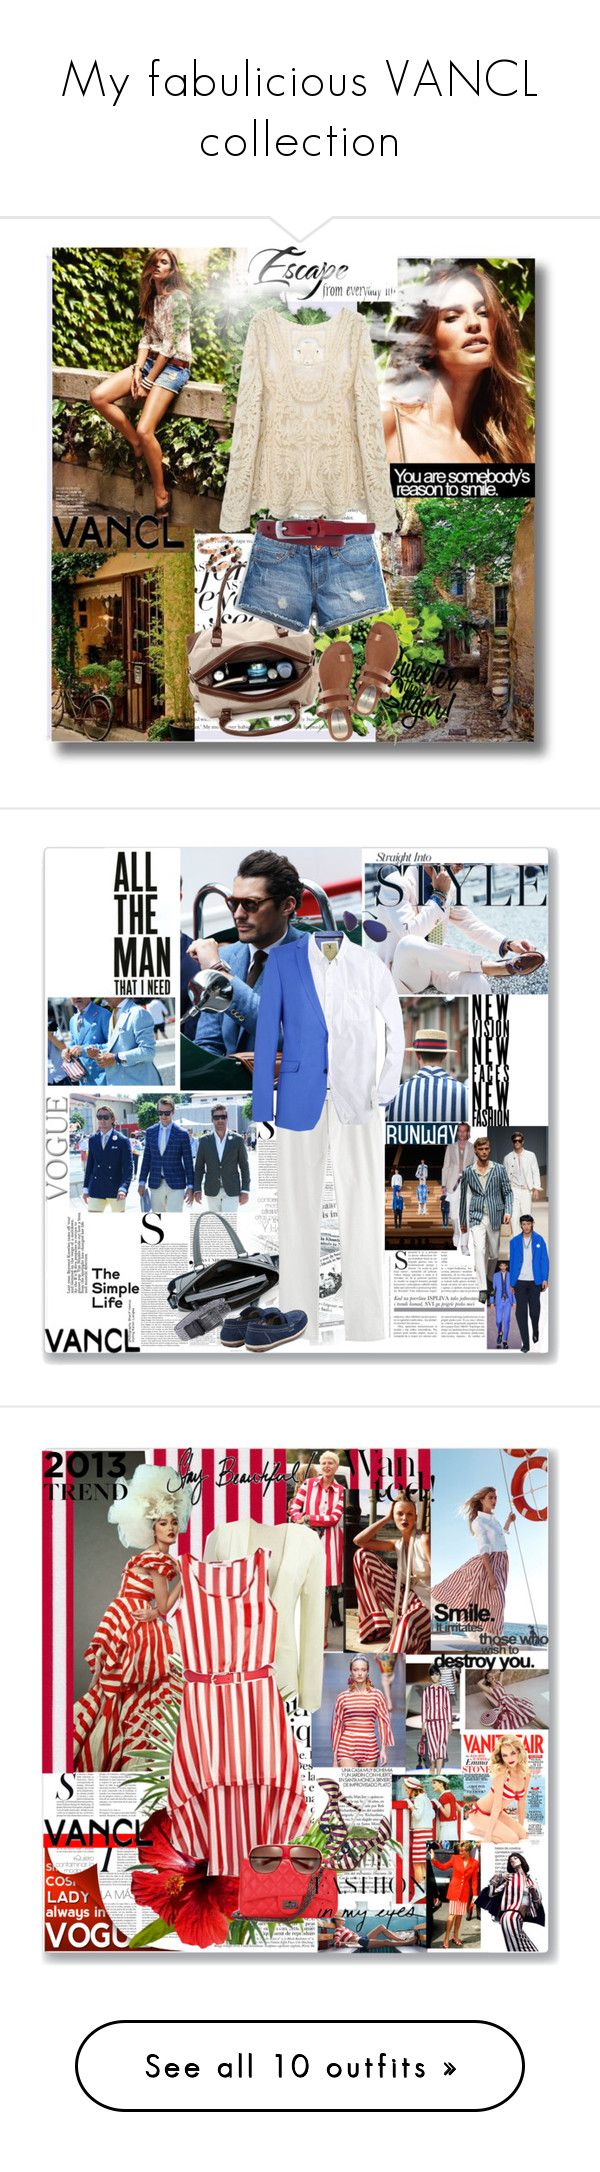 """""""My fabulicious VANCL collection"""" by naki14 ❤ liked on Polyvore featuring Retrò, Charli, Kenzo, Maison Margiela, Trussardi, Canali, SELECTED, Valletta, Dolce&Gabbana and Marc Jacobs"""